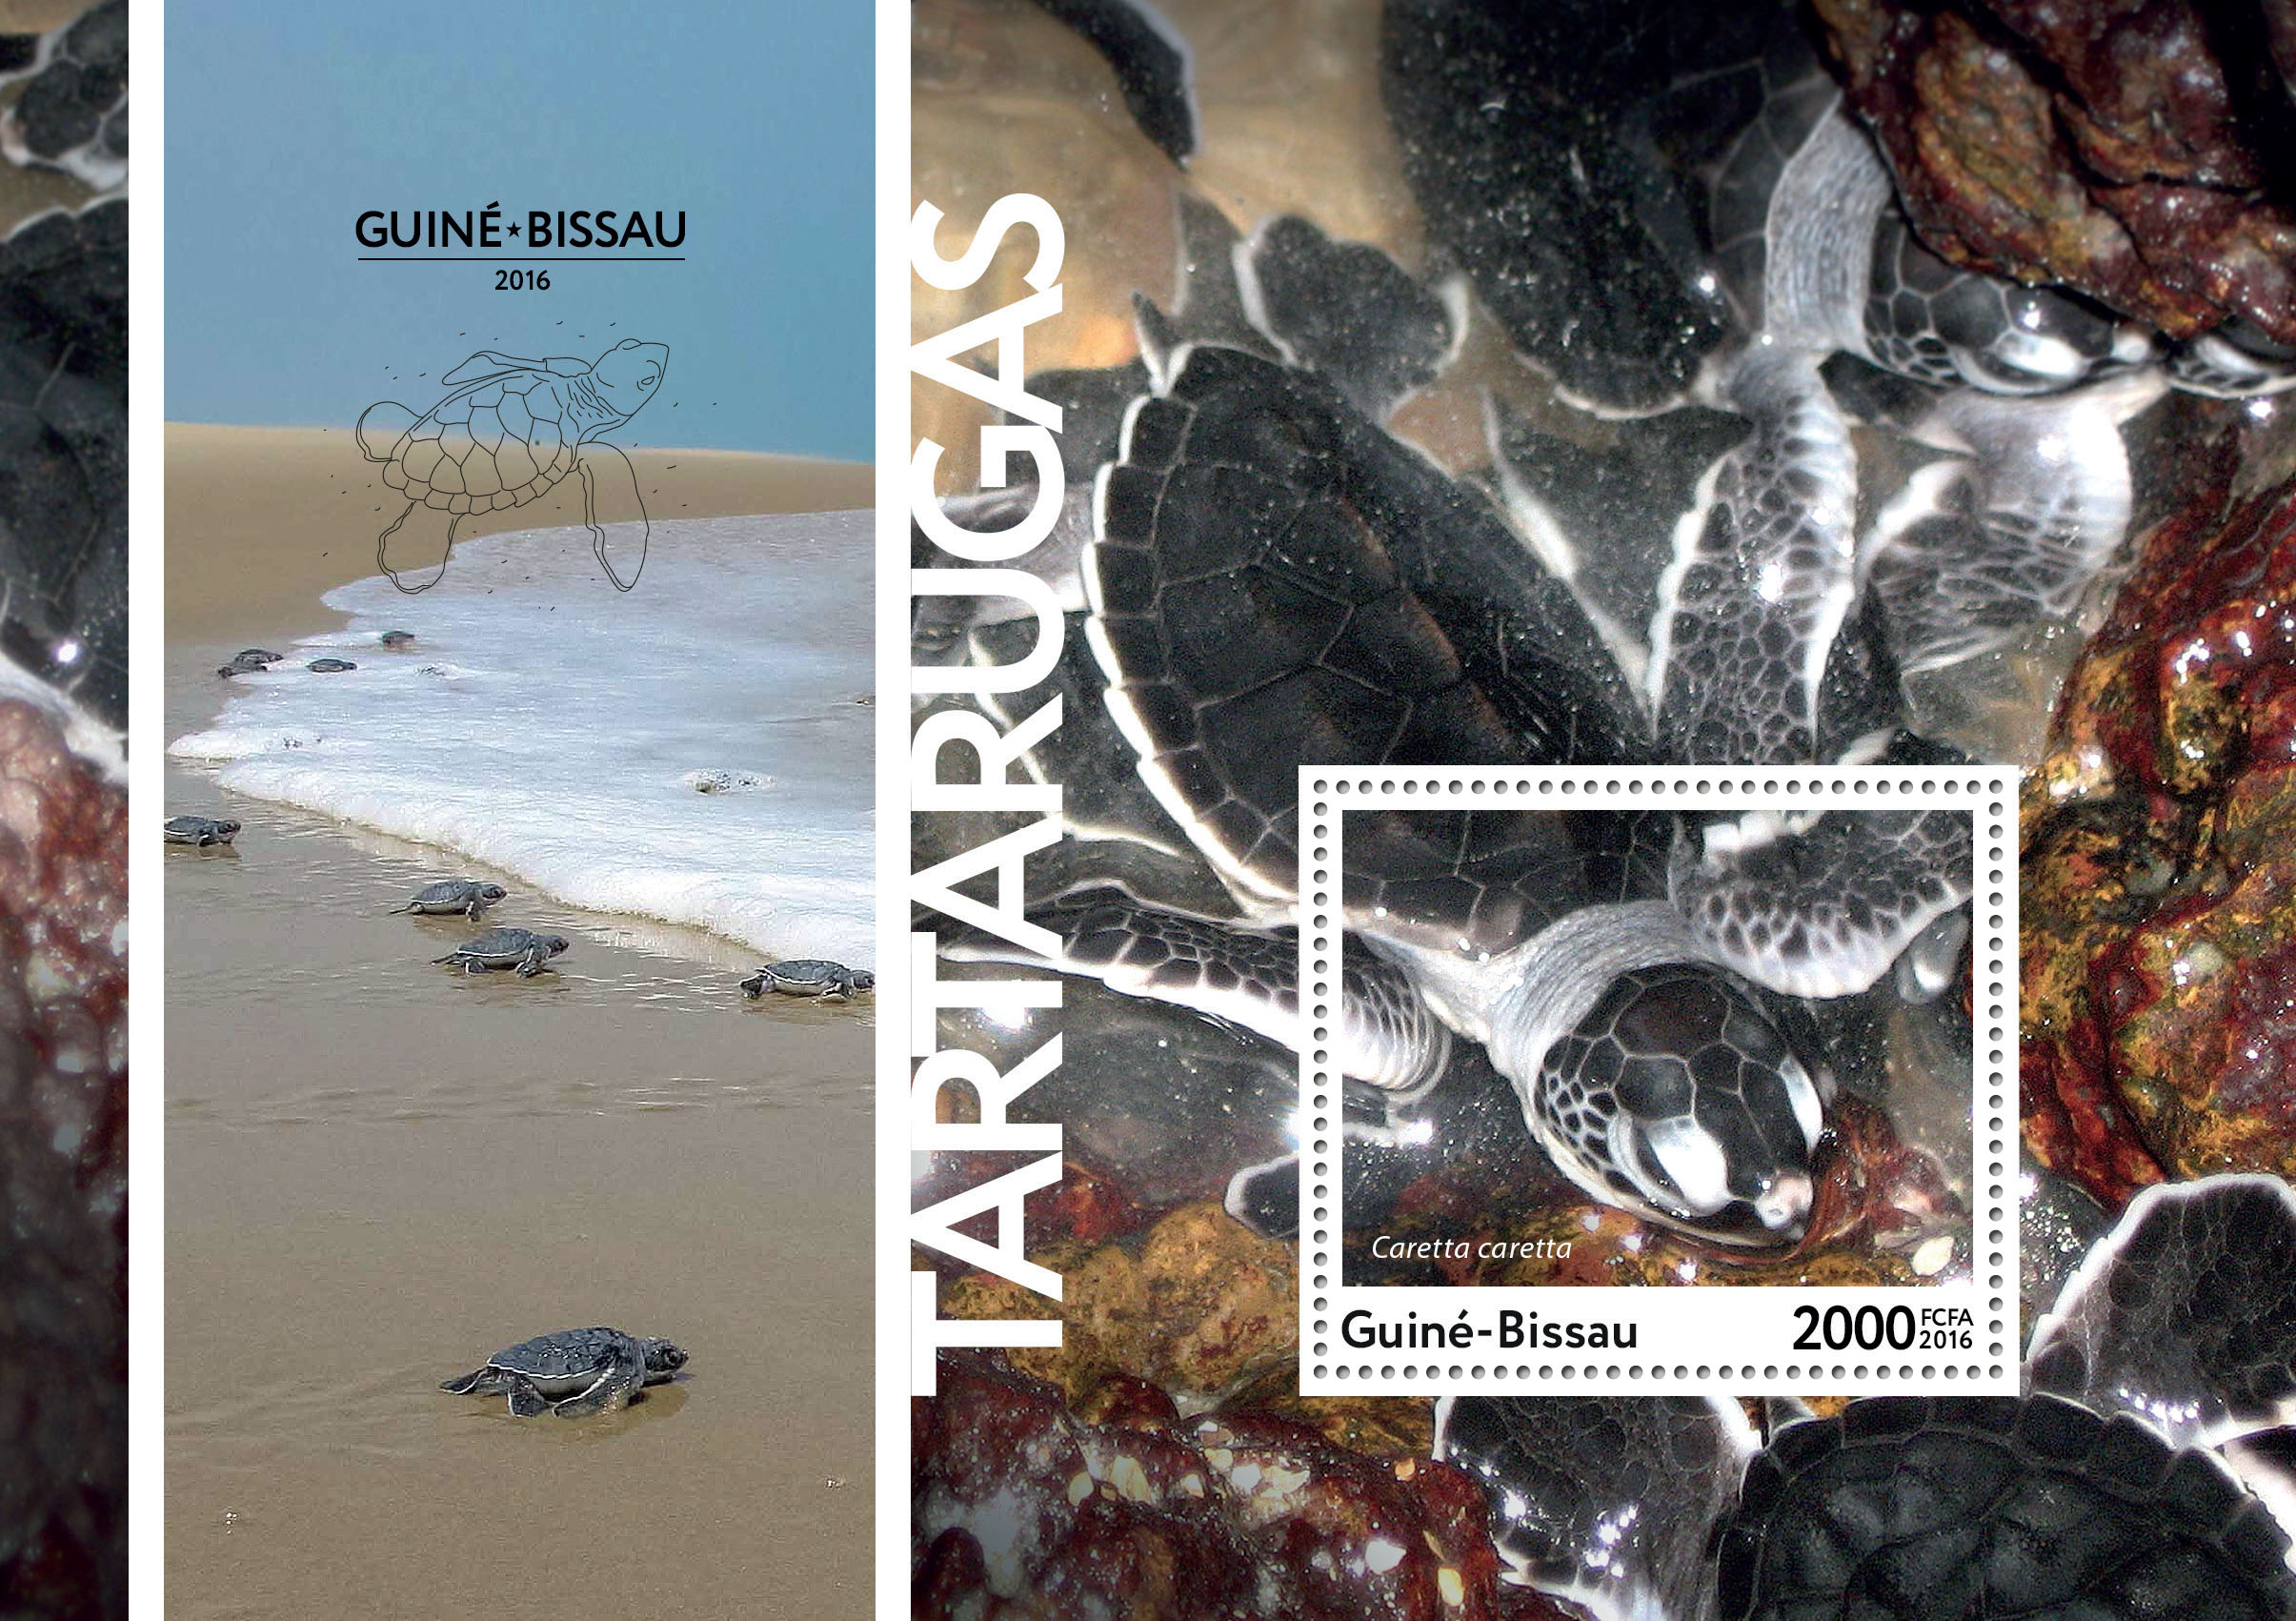 Turtles s/s - Issue of Guinée-Bissau postage stamps